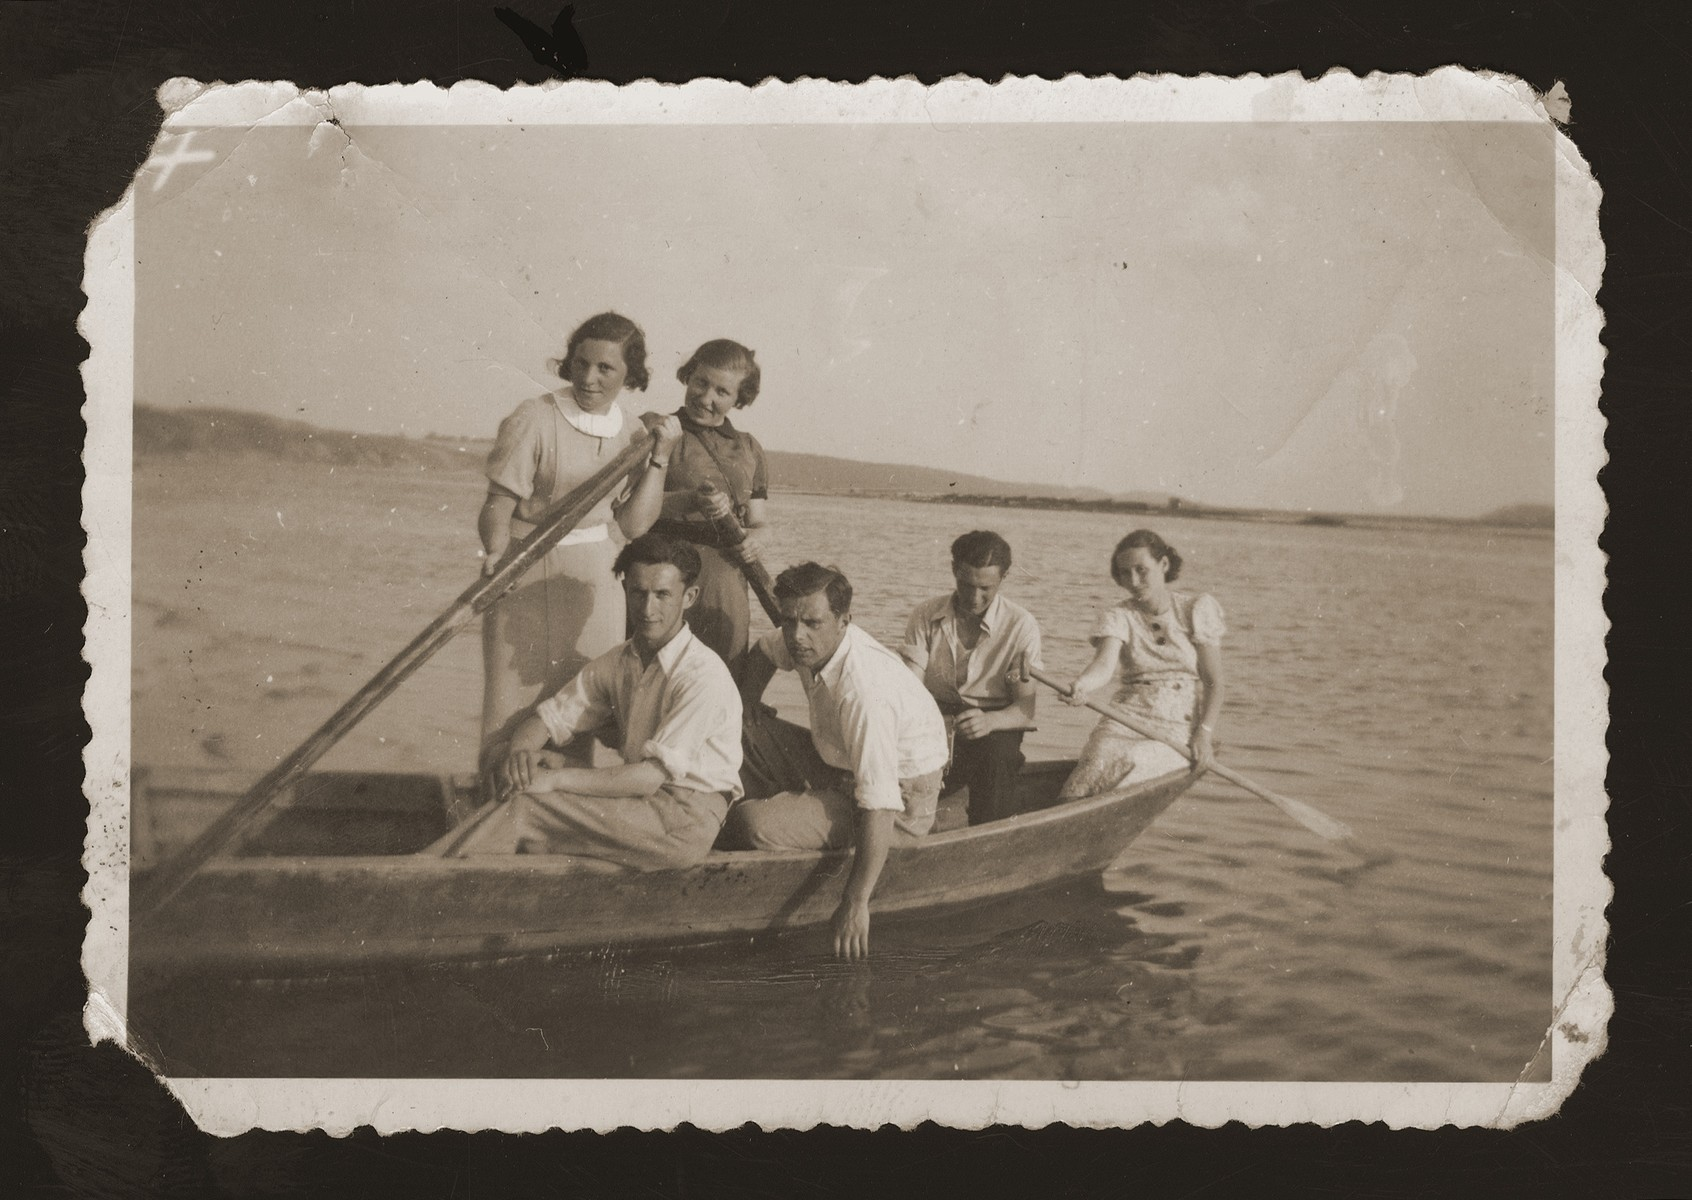 A group of Jewish friends go boating on the Nemunas River in the village of Vilkija near Kaunas.    Among those pictured are Dita Katz (far right) and Shimon Tamshe (second on the right).